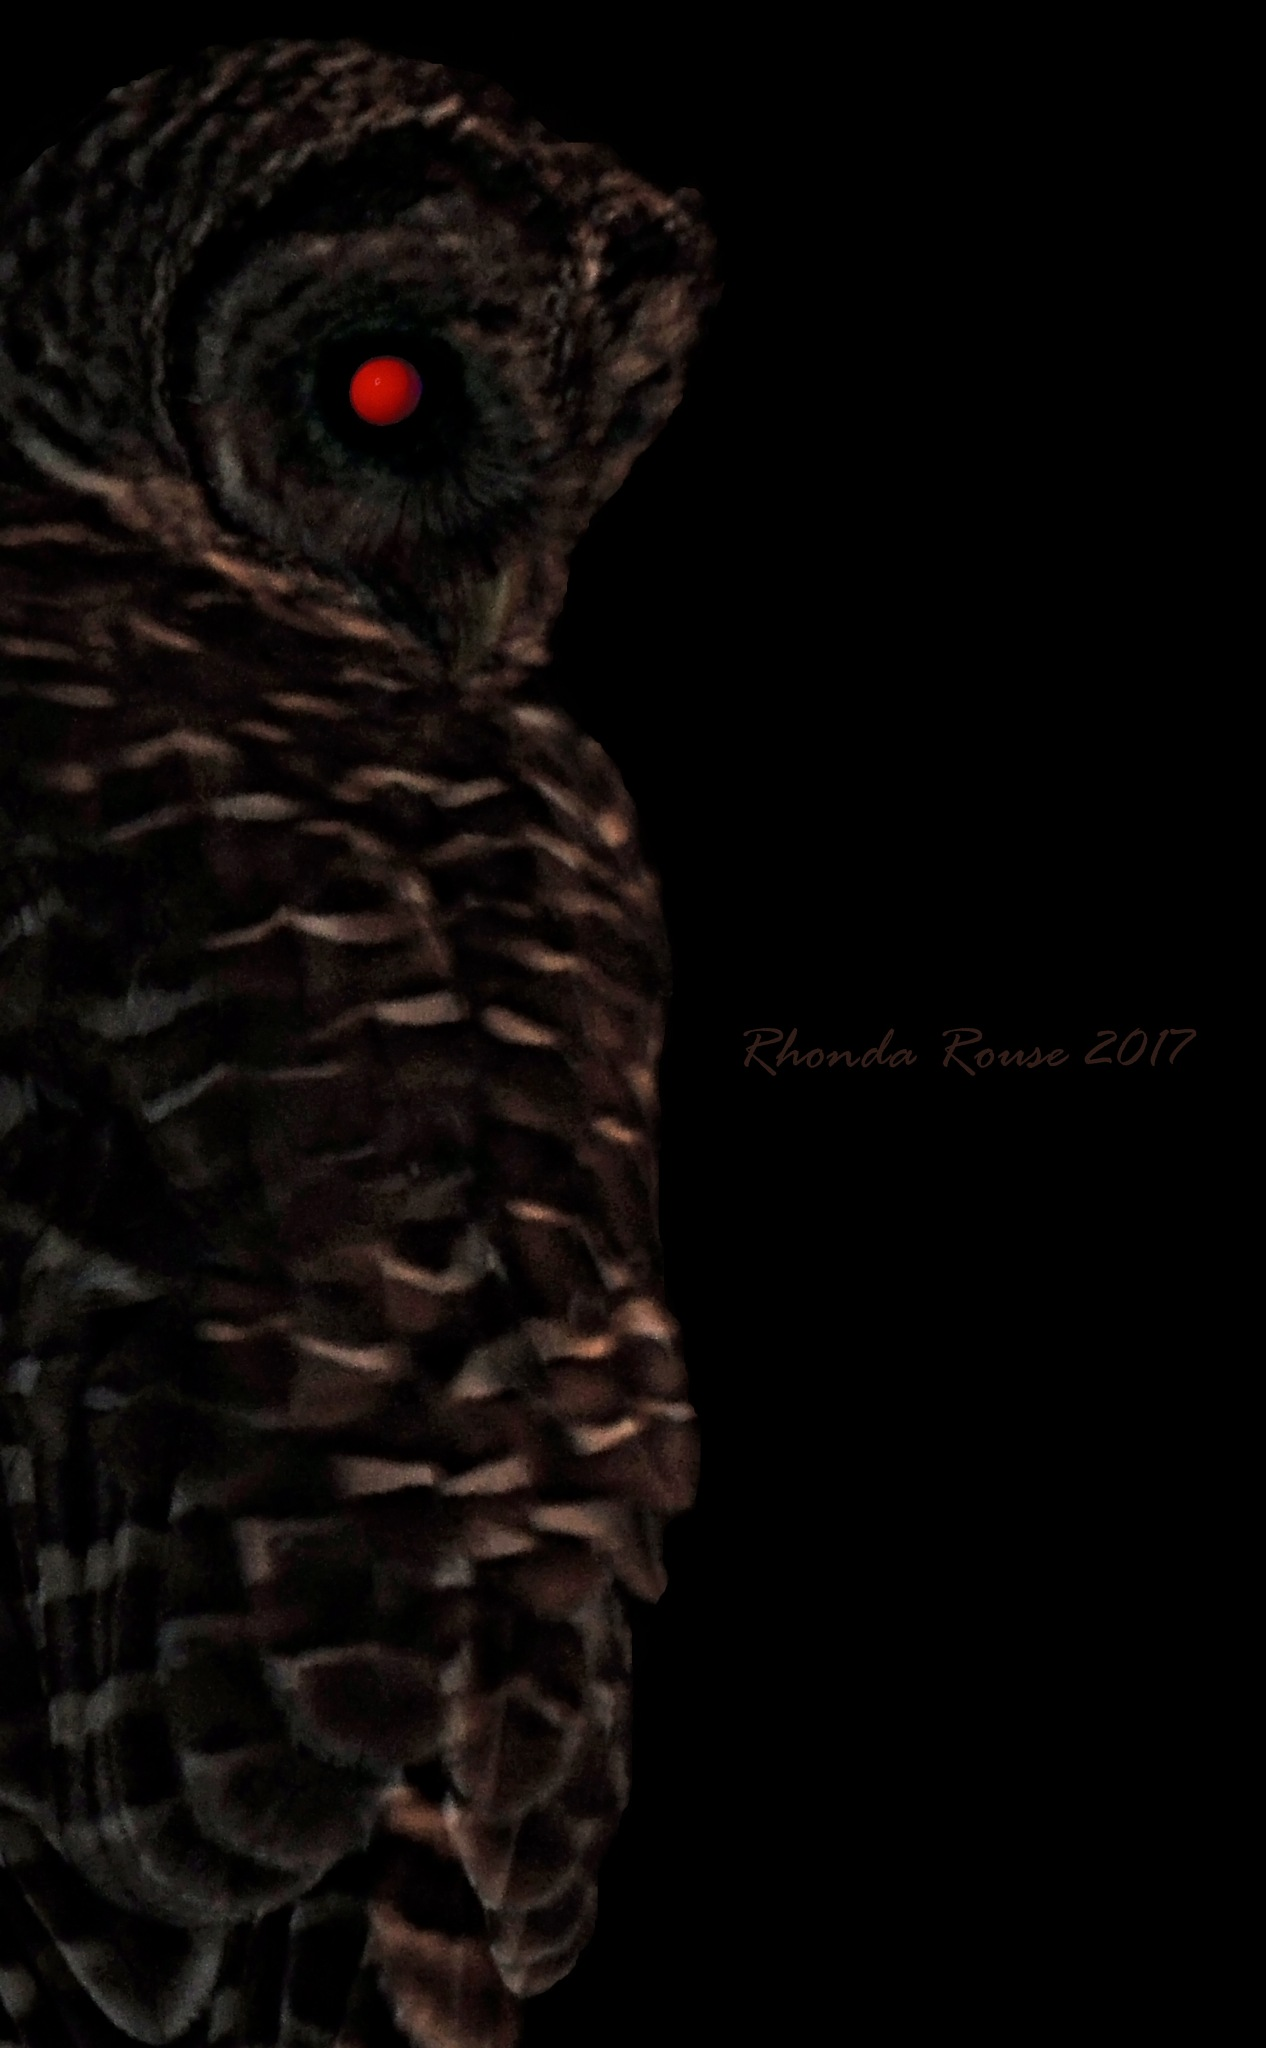 Terminator's Owl by Rhonda A Rouse